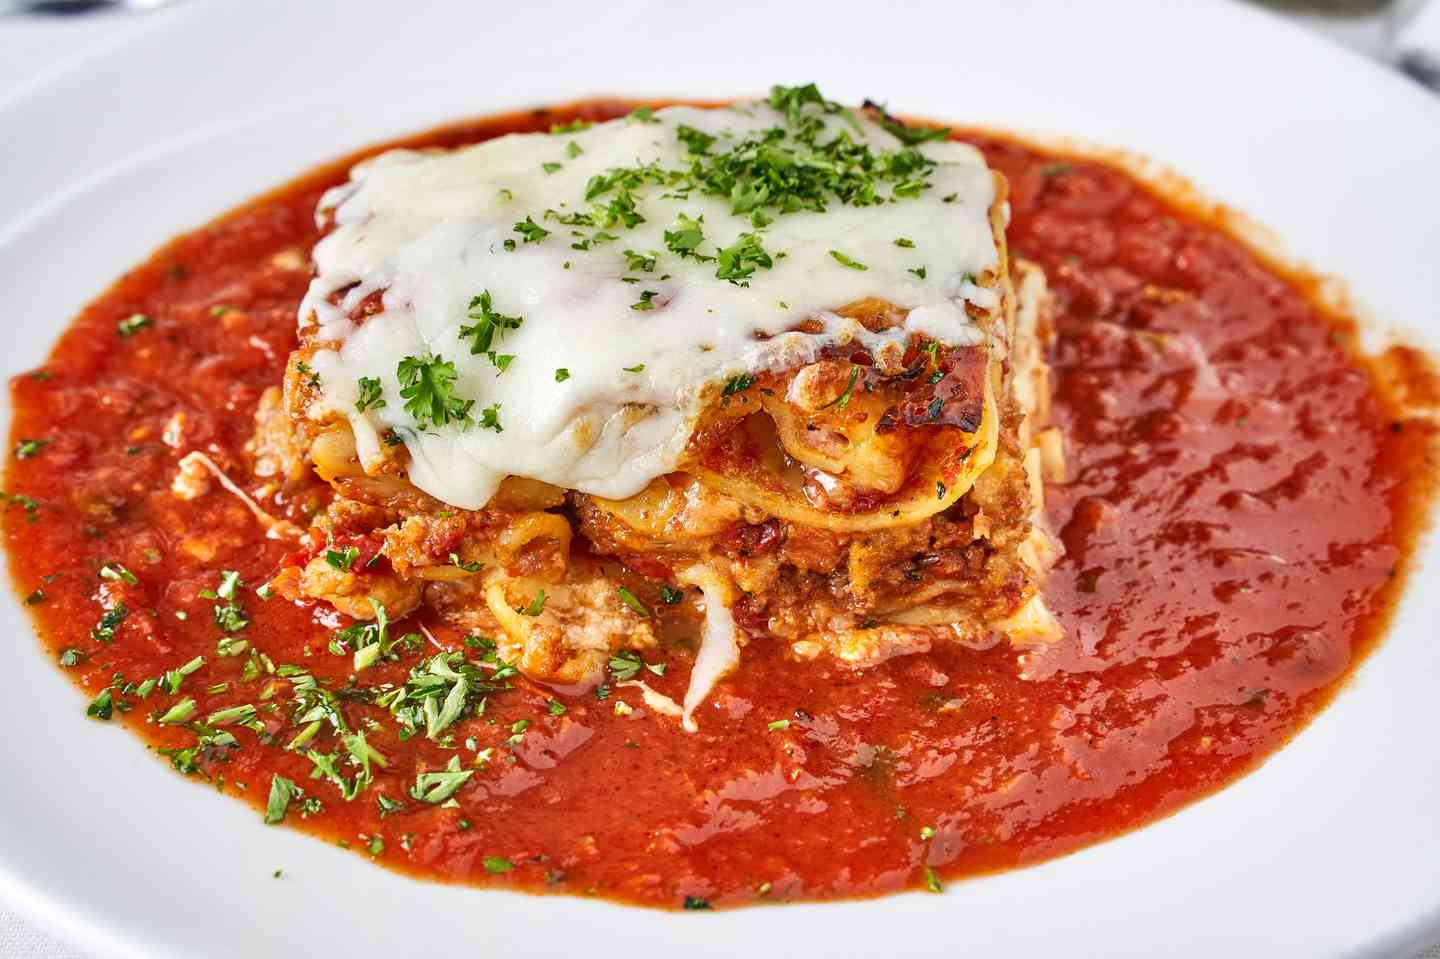 Classic Meat Lasagna Served with Marinara Sauce on The Side